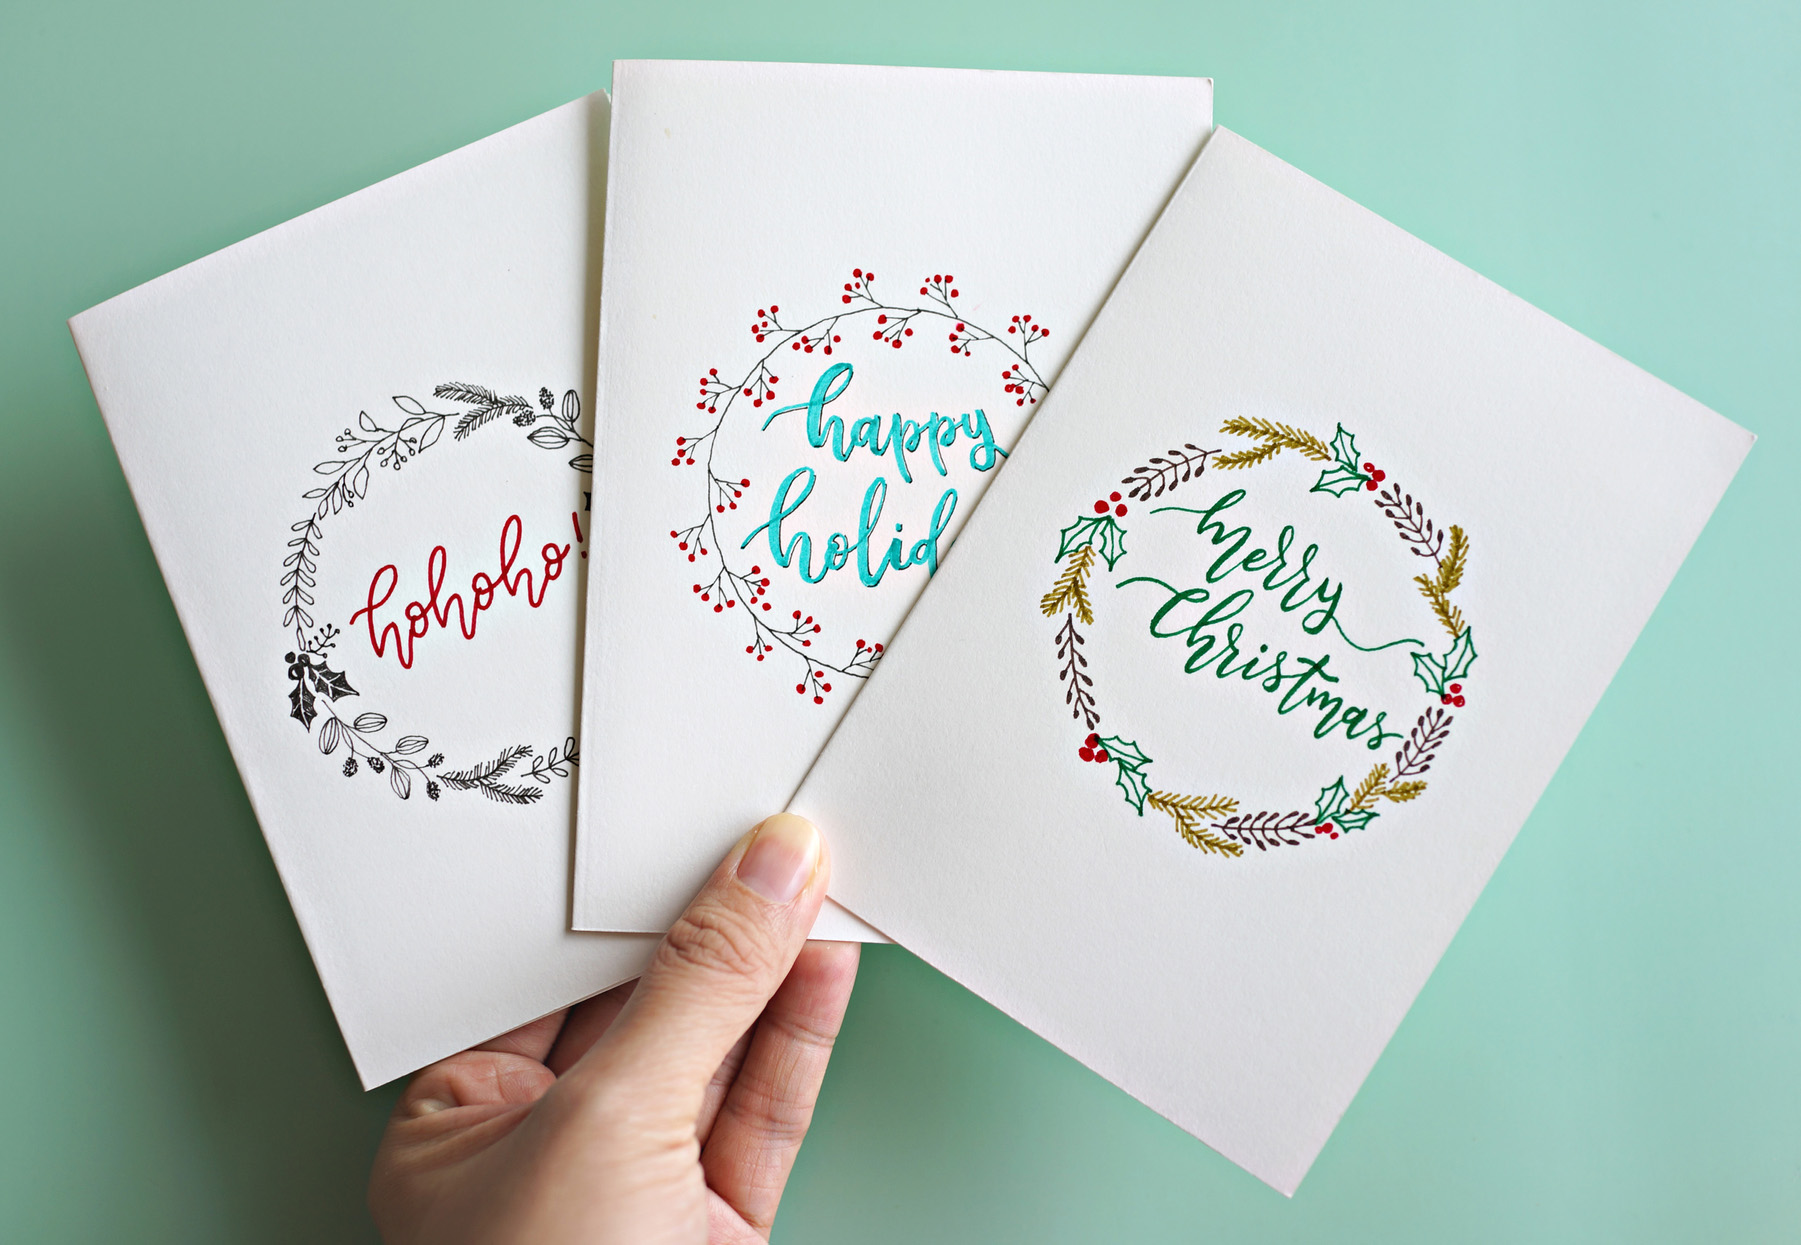 9 Free Card Making Software Programs for Custom Greetings | LoveToKnow